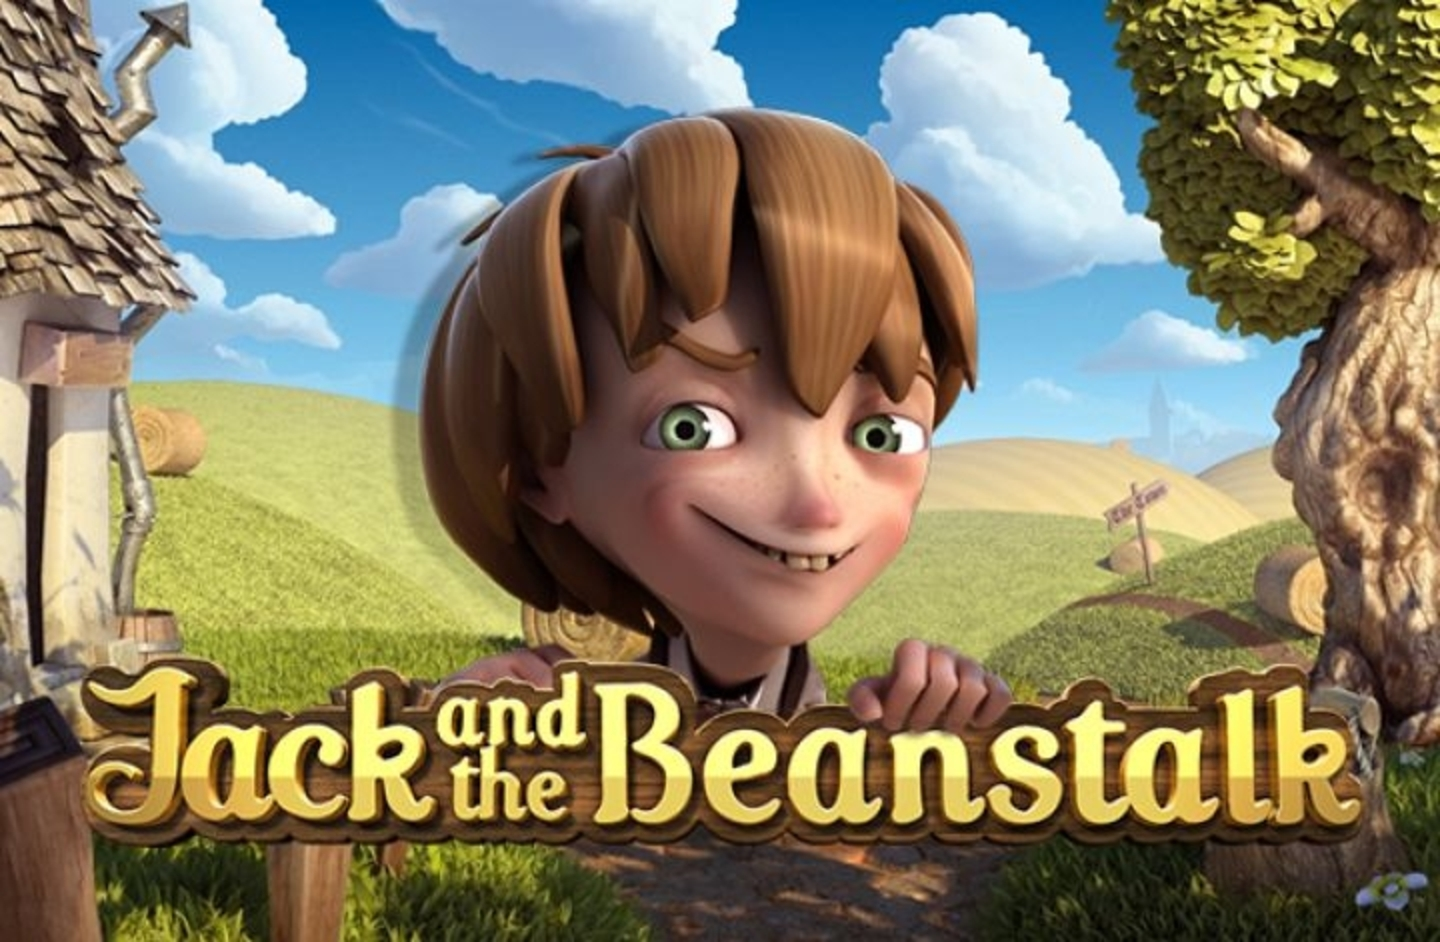 The Jack and the Beanstalk Online Slot Demo Game by NetEnt